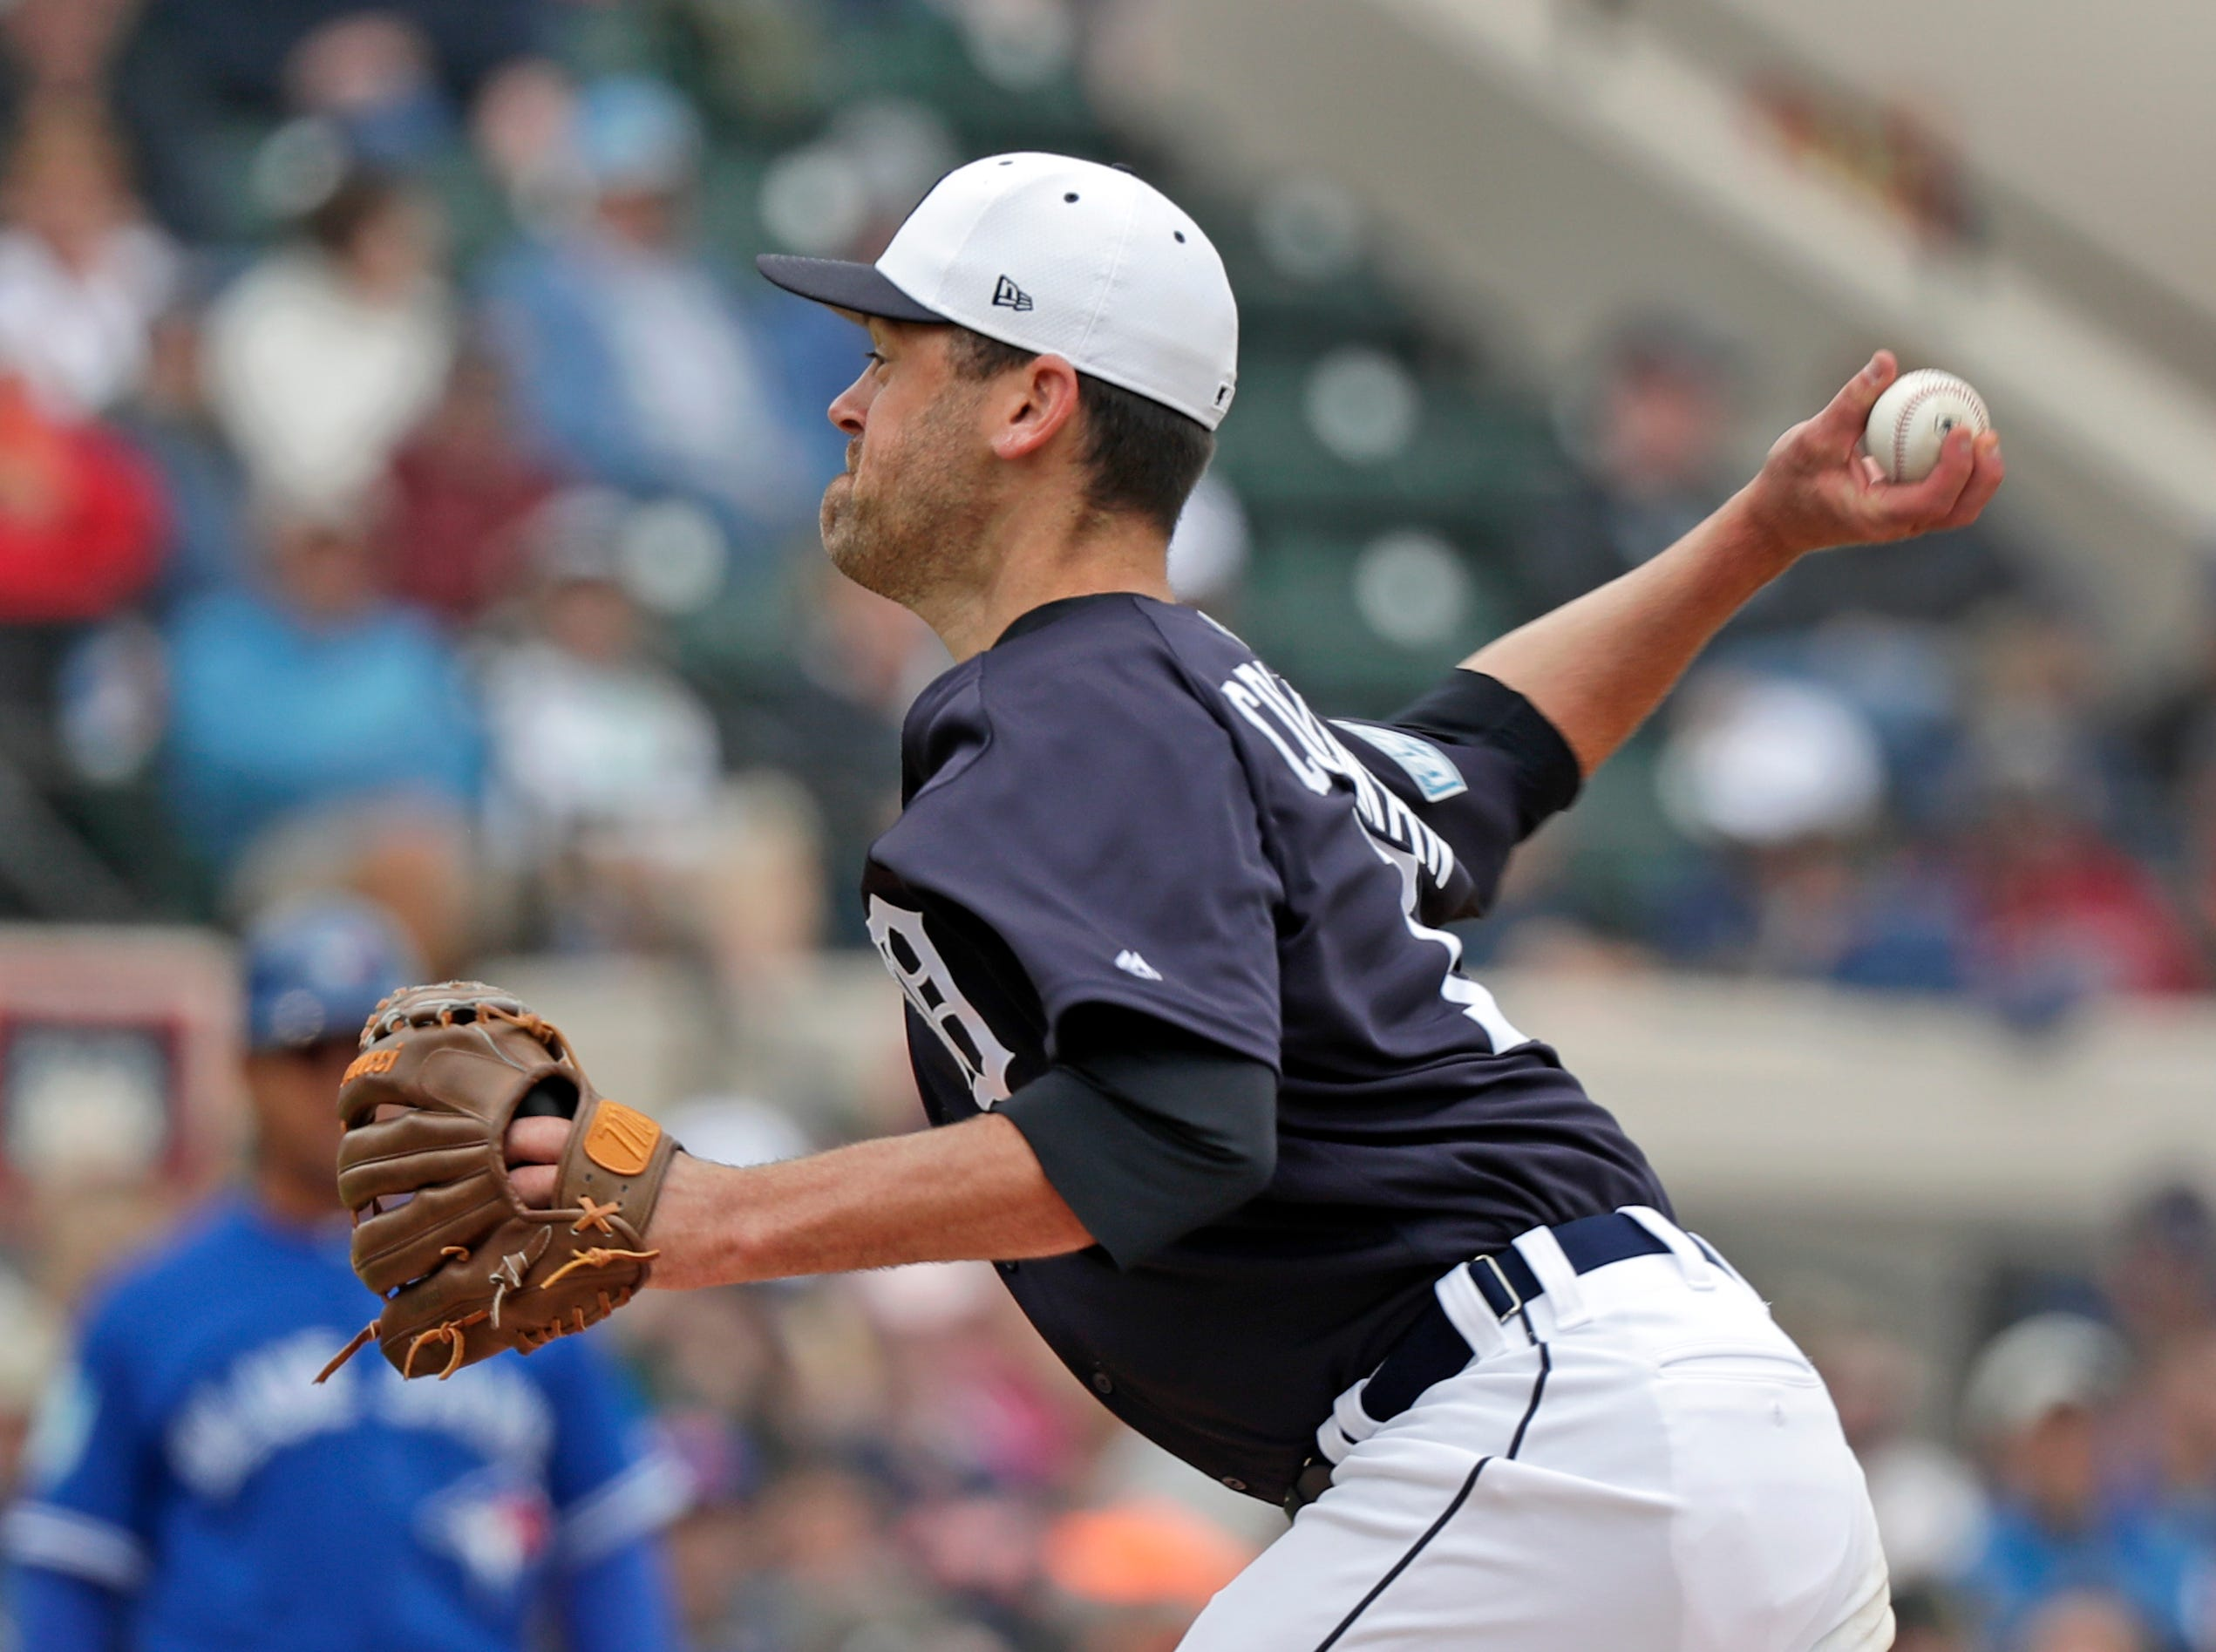 Detroit Tigers relief pitcher Louis Coleman throws against the Toronto Blue Jays in the fourth inning of a spring baseball exhibition game, Tuesday, March 5, 2019.Photo/John Raoux)